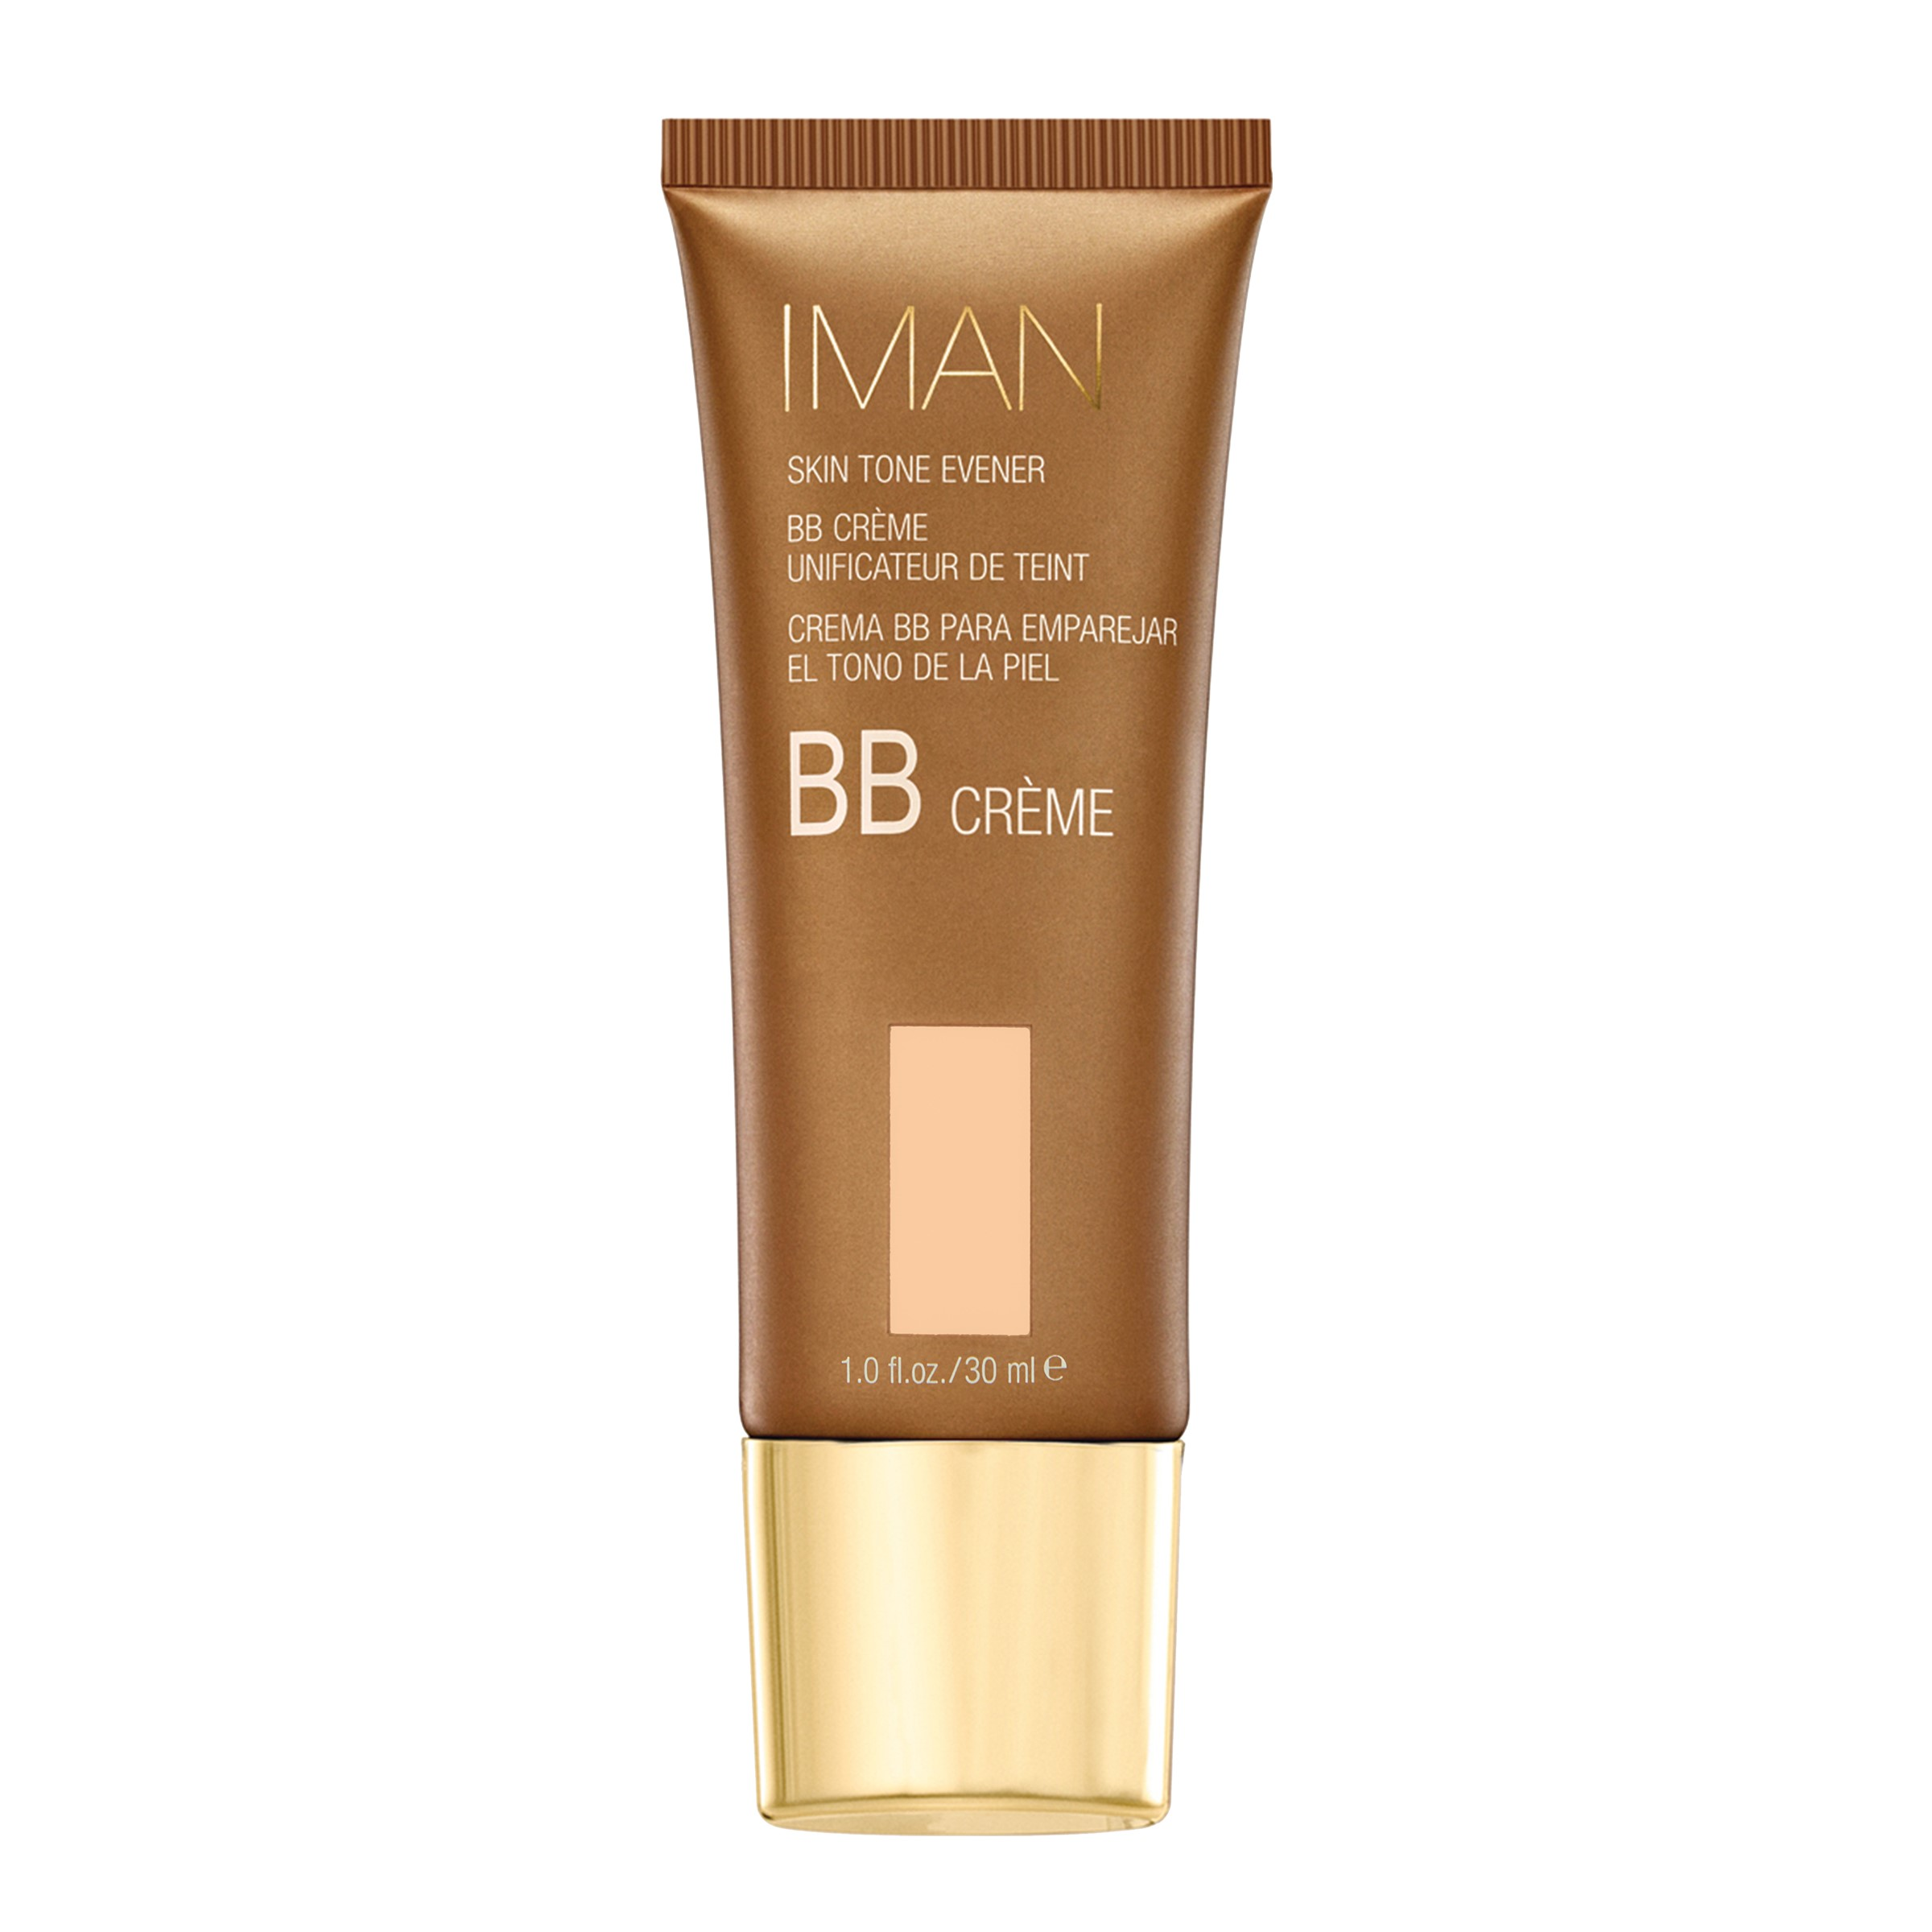 IMAN Skin Tone Evener BB Crème, Light Sand